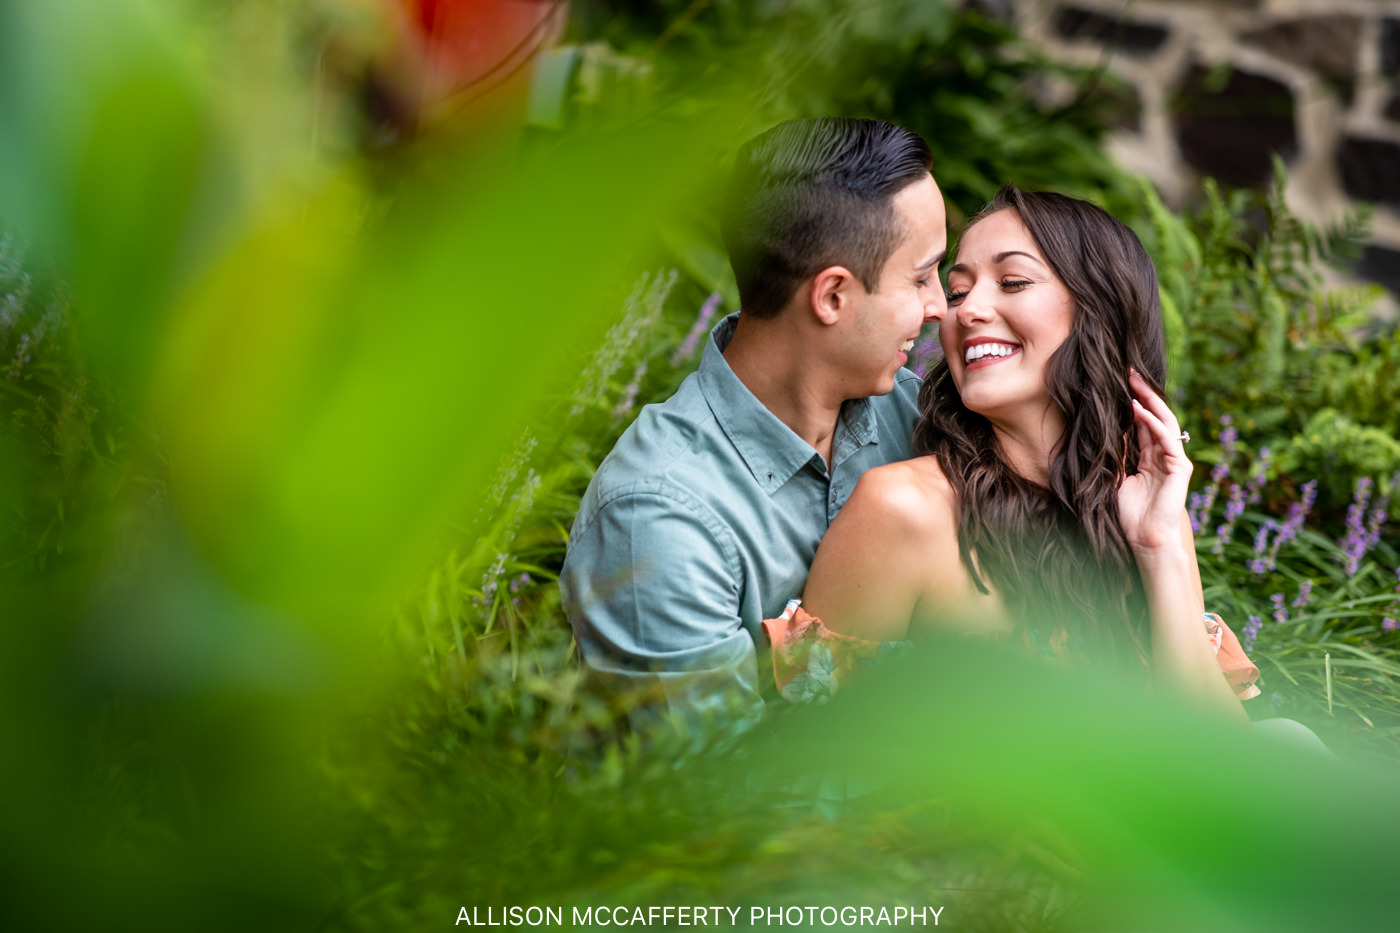 South Jersey Engagement Session Location Inspiration